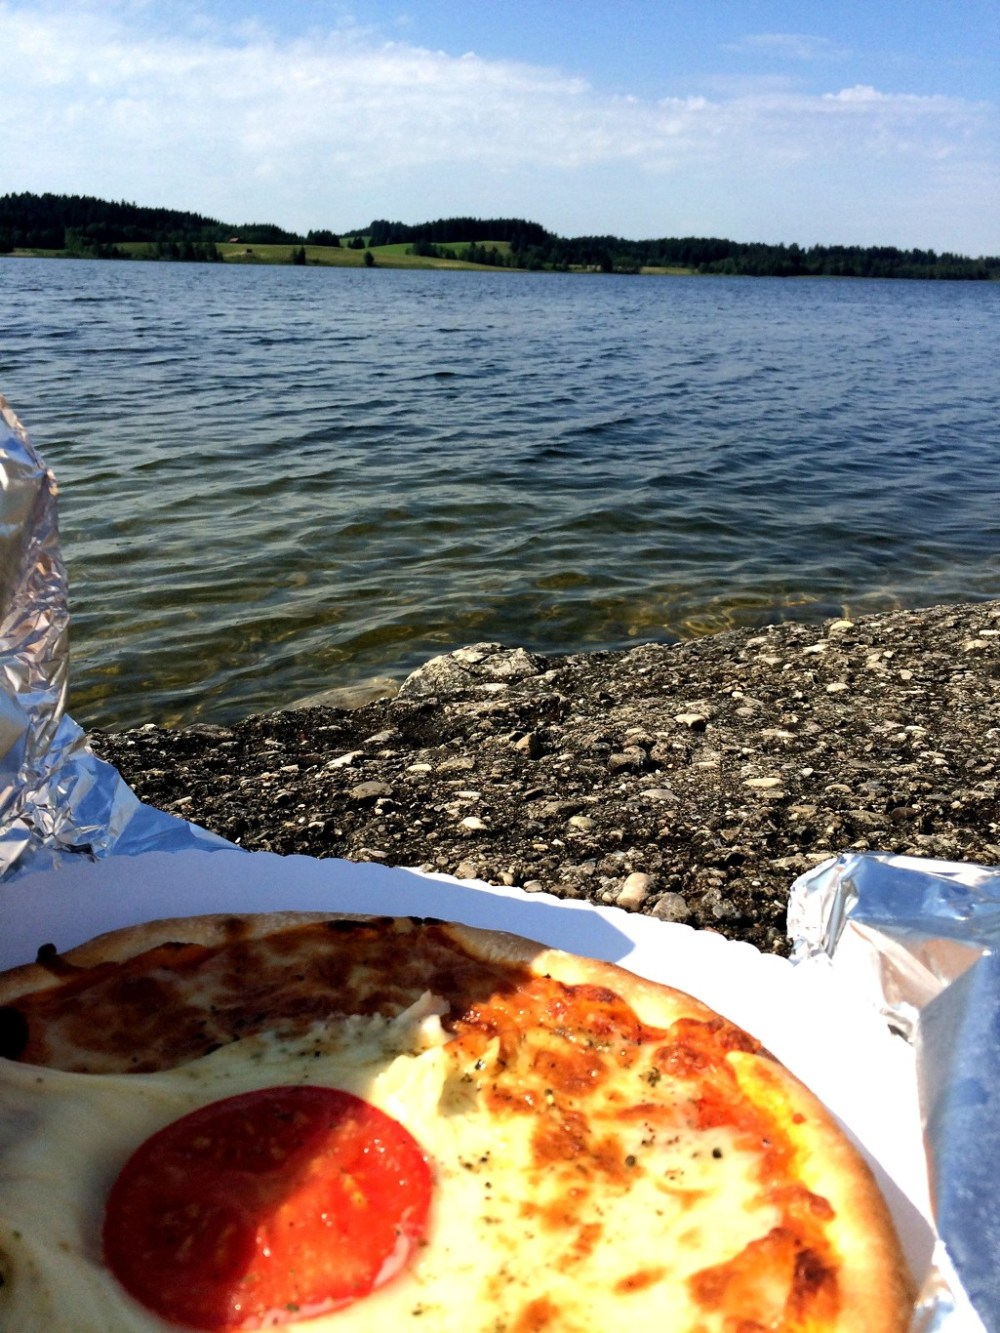 Vegetarian pizza by the lake near Neuschwanstein Castle